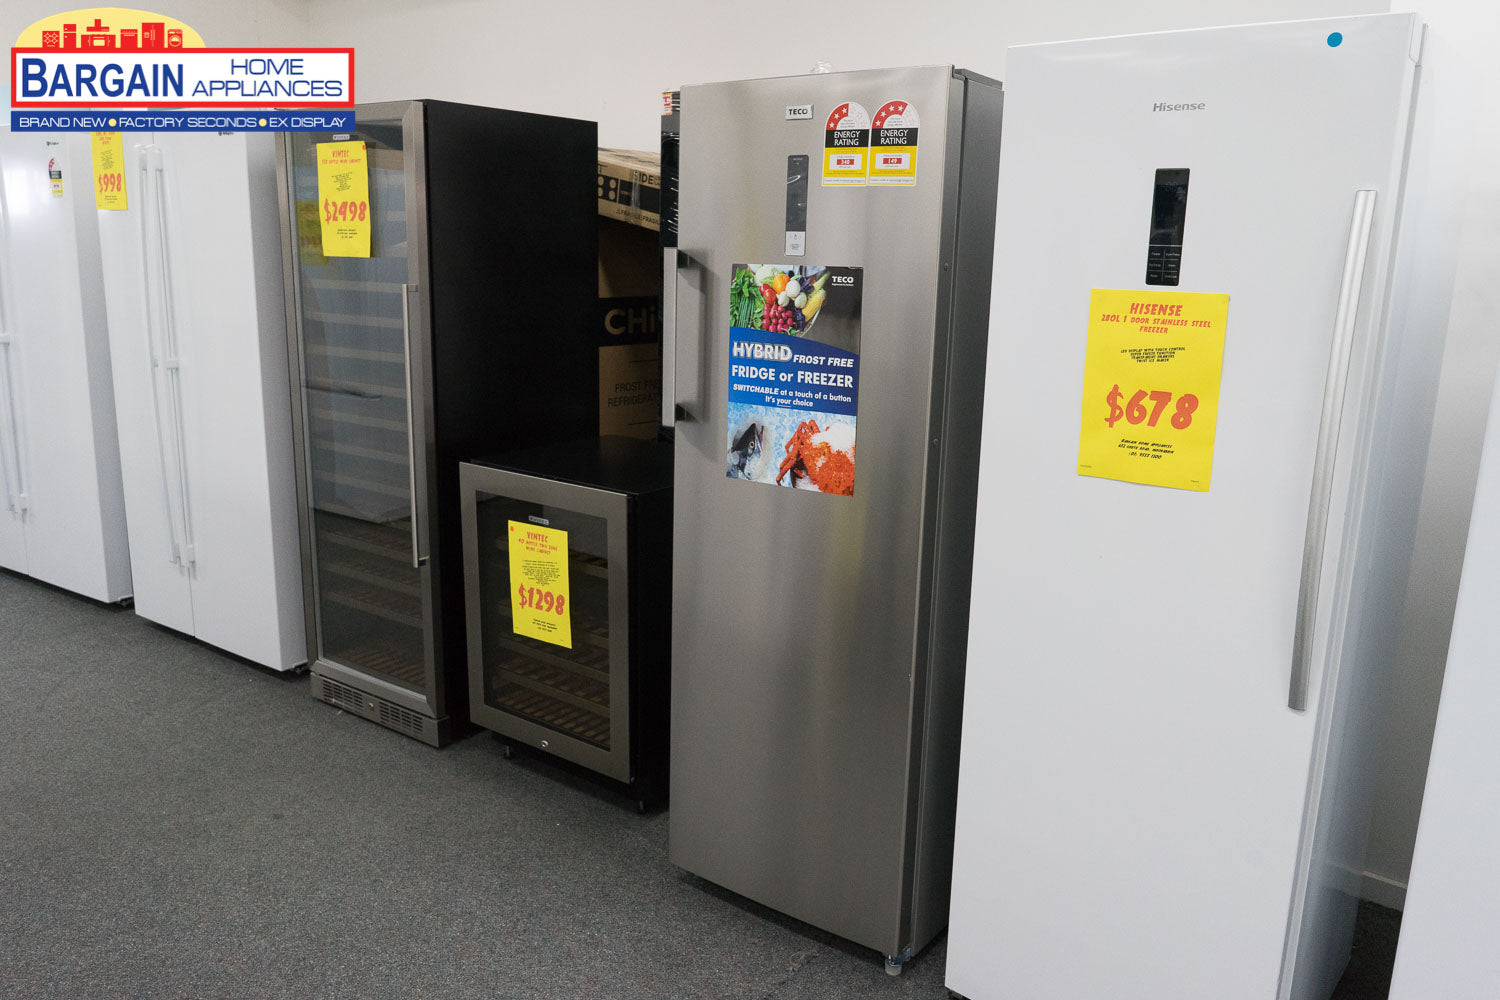 Teco THF268SNTAM 268L Stainless Steel Hybrid Fridge or Freezer - Bargain Home Appliances